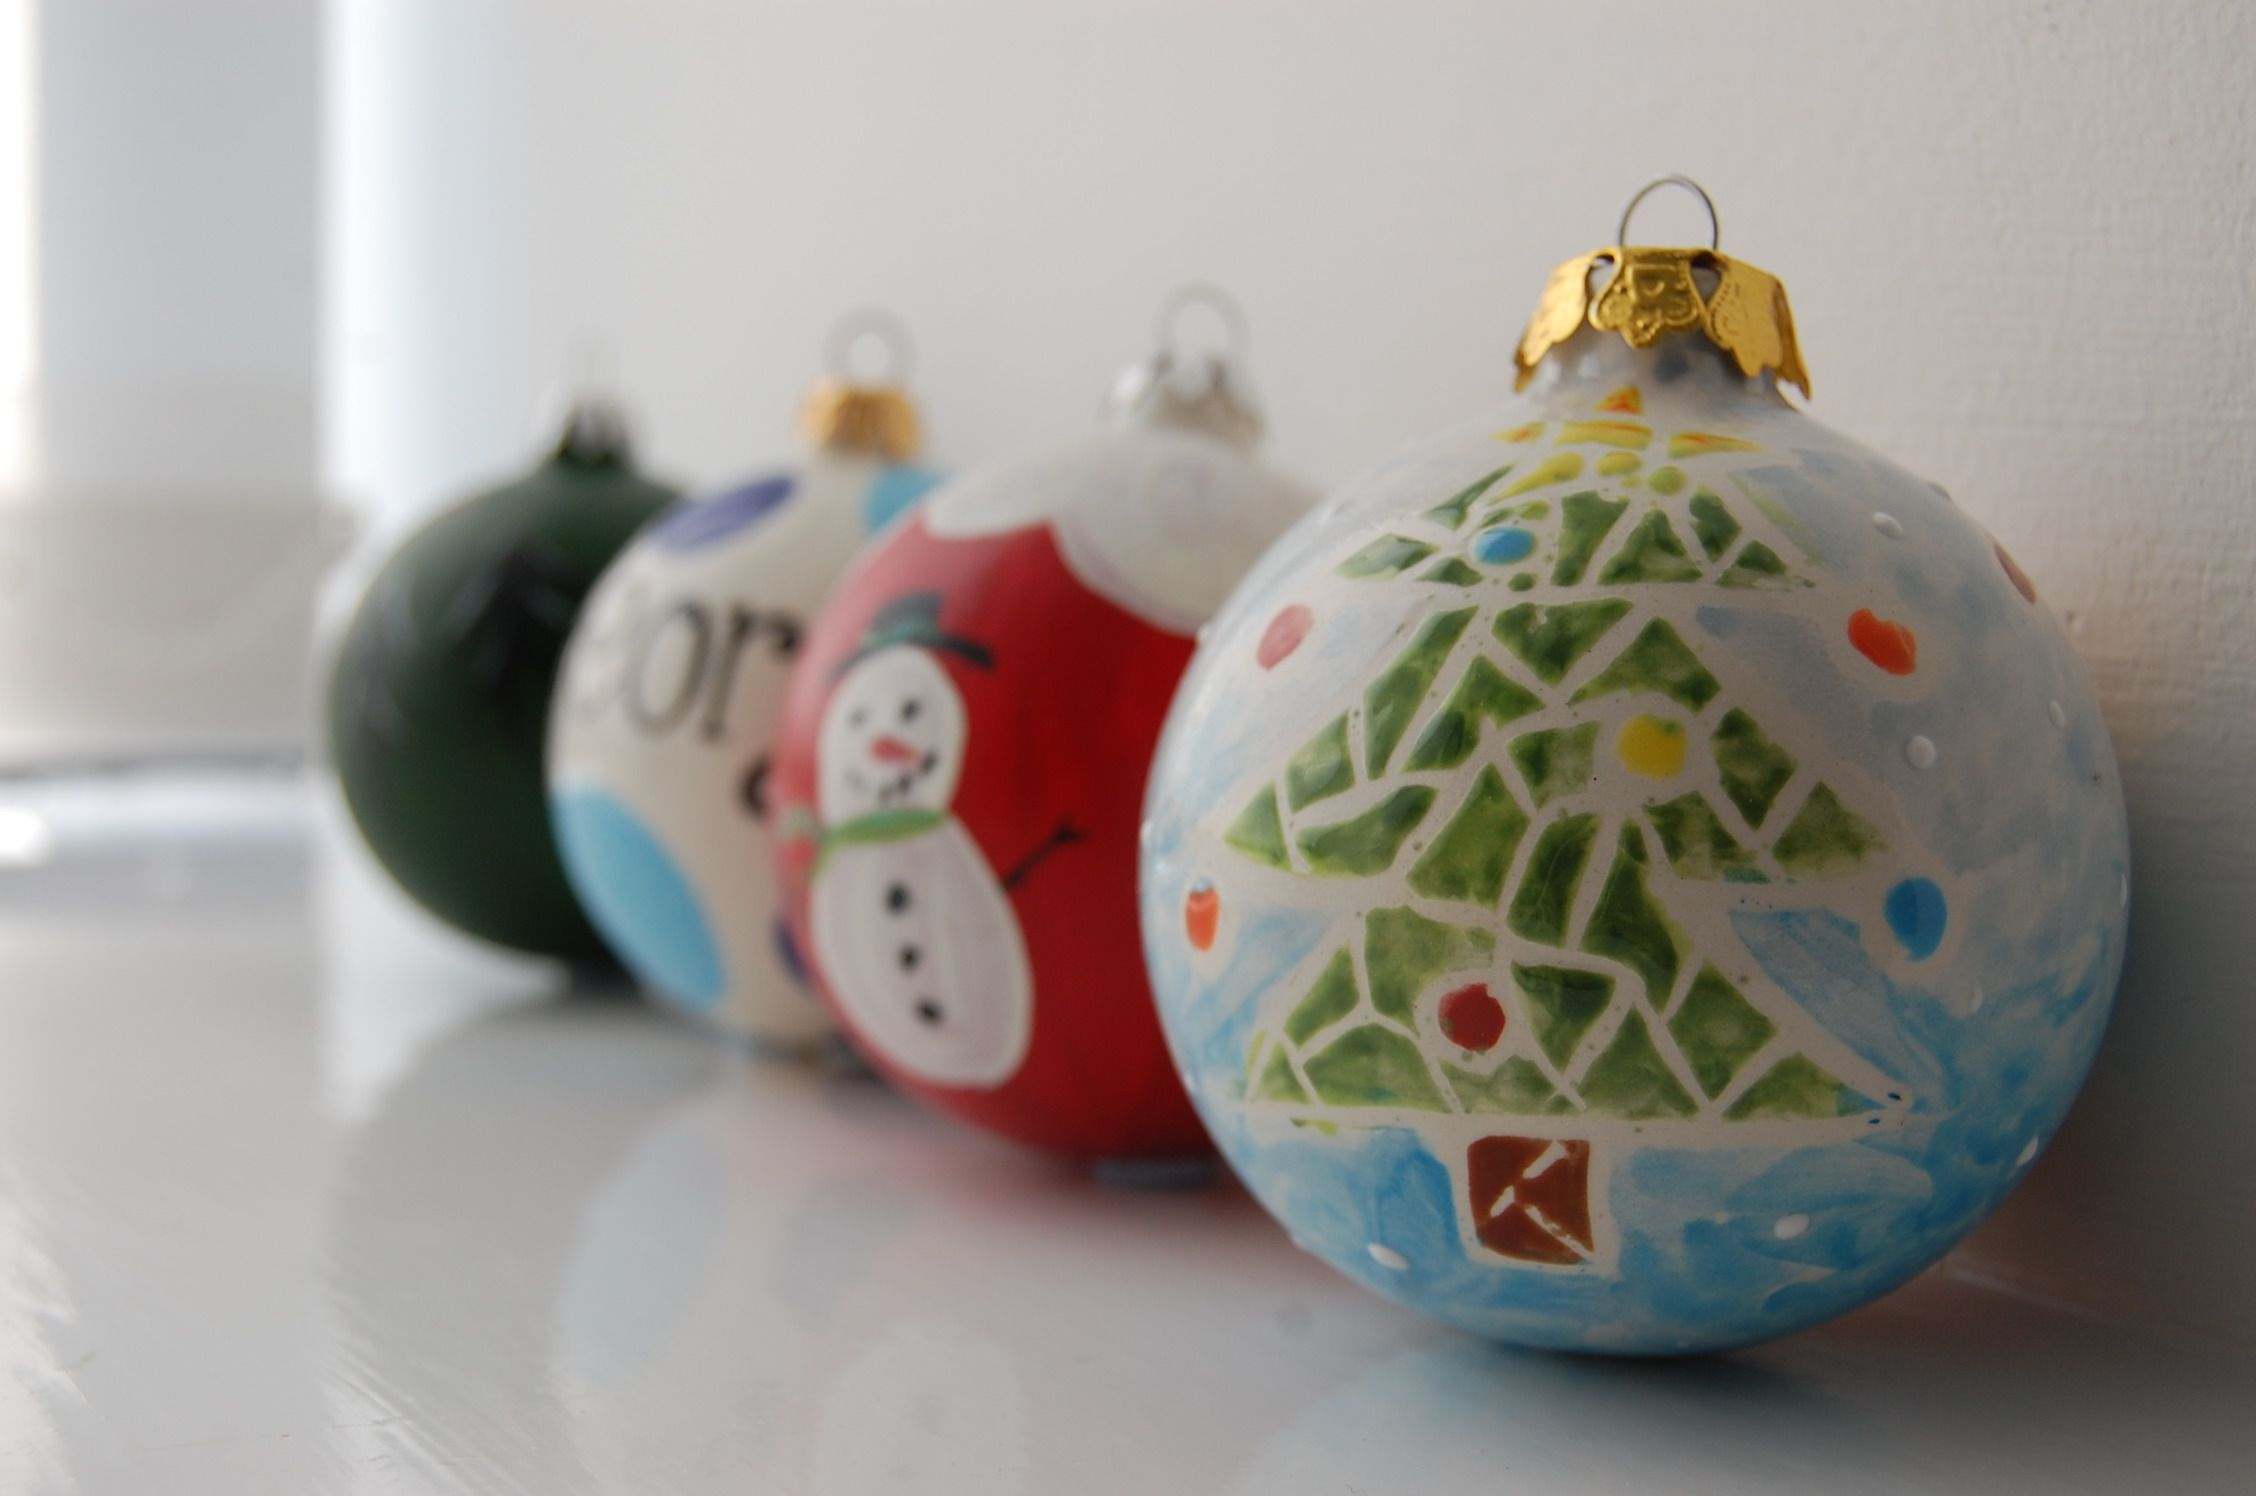 paint your own bauble ornament decoration these are our own brand pottery blanks supplied in white ready to paint - Paint Your Own Ceramic Christmas Decorations